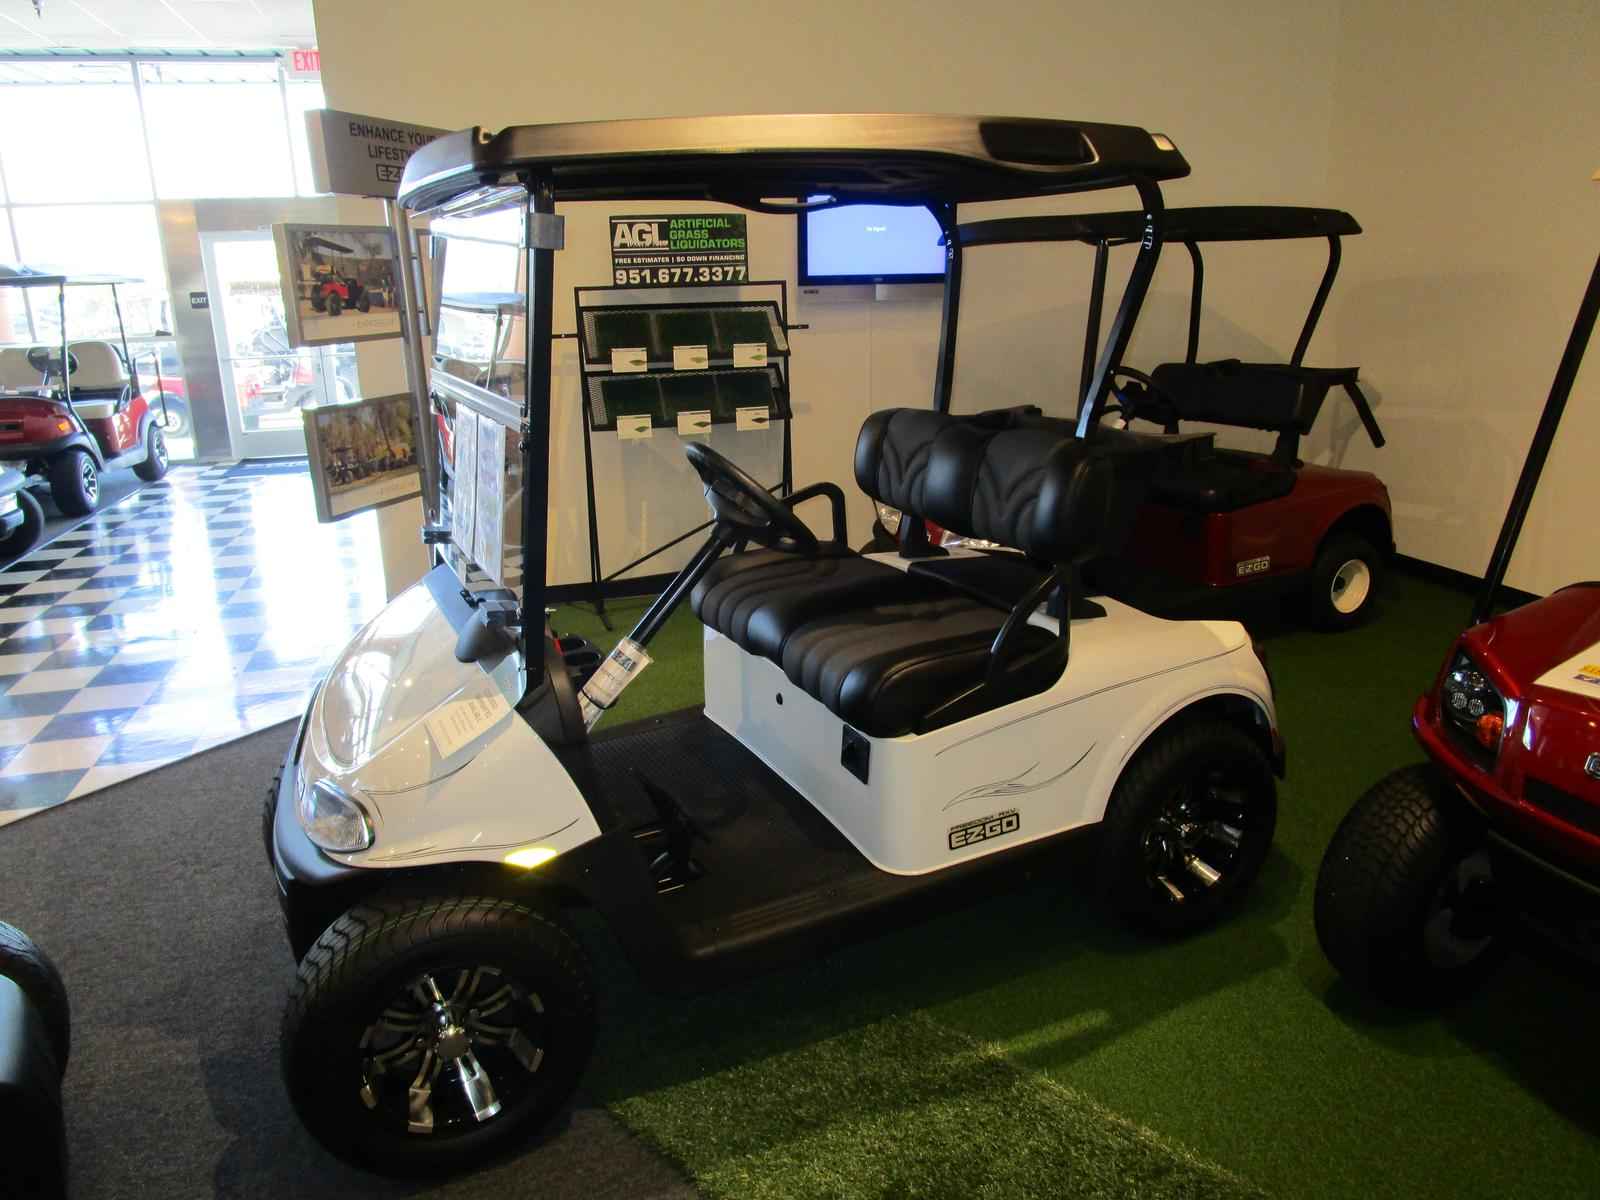 New 2017 Golf Carts from E-Z-GO Prestige Motorsports Ezgo Golf Cart Volt Ac on used club car golf cart, ezgo 36 volt golf cart, ezgo 48 volt conversion kit,